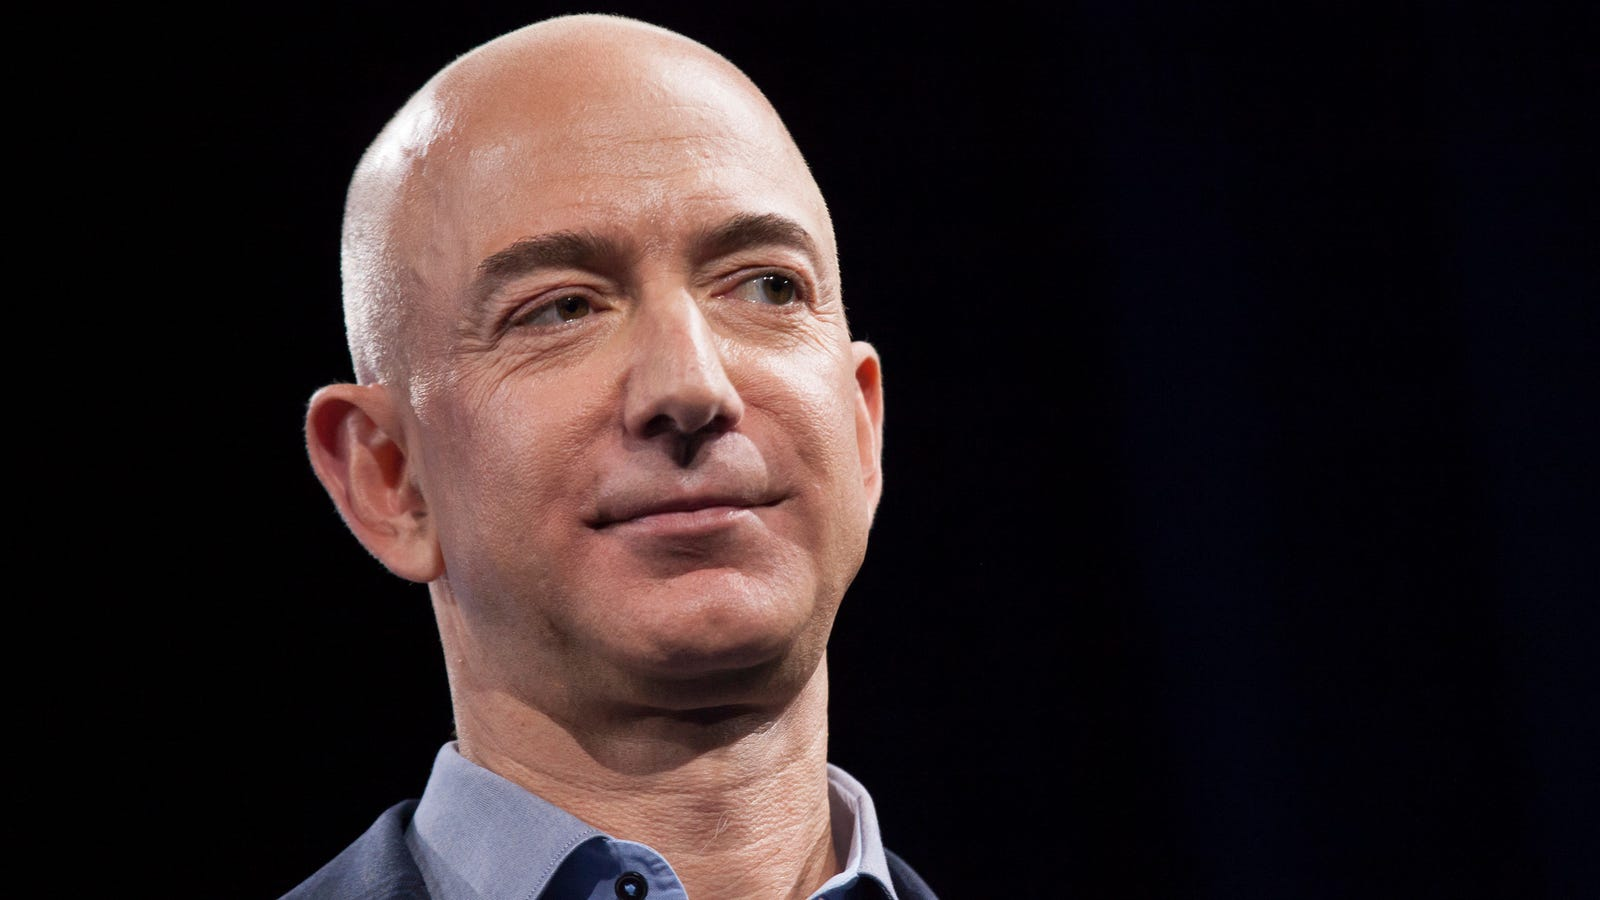 6,000 Amazon Employees Sign Climate Change Letter